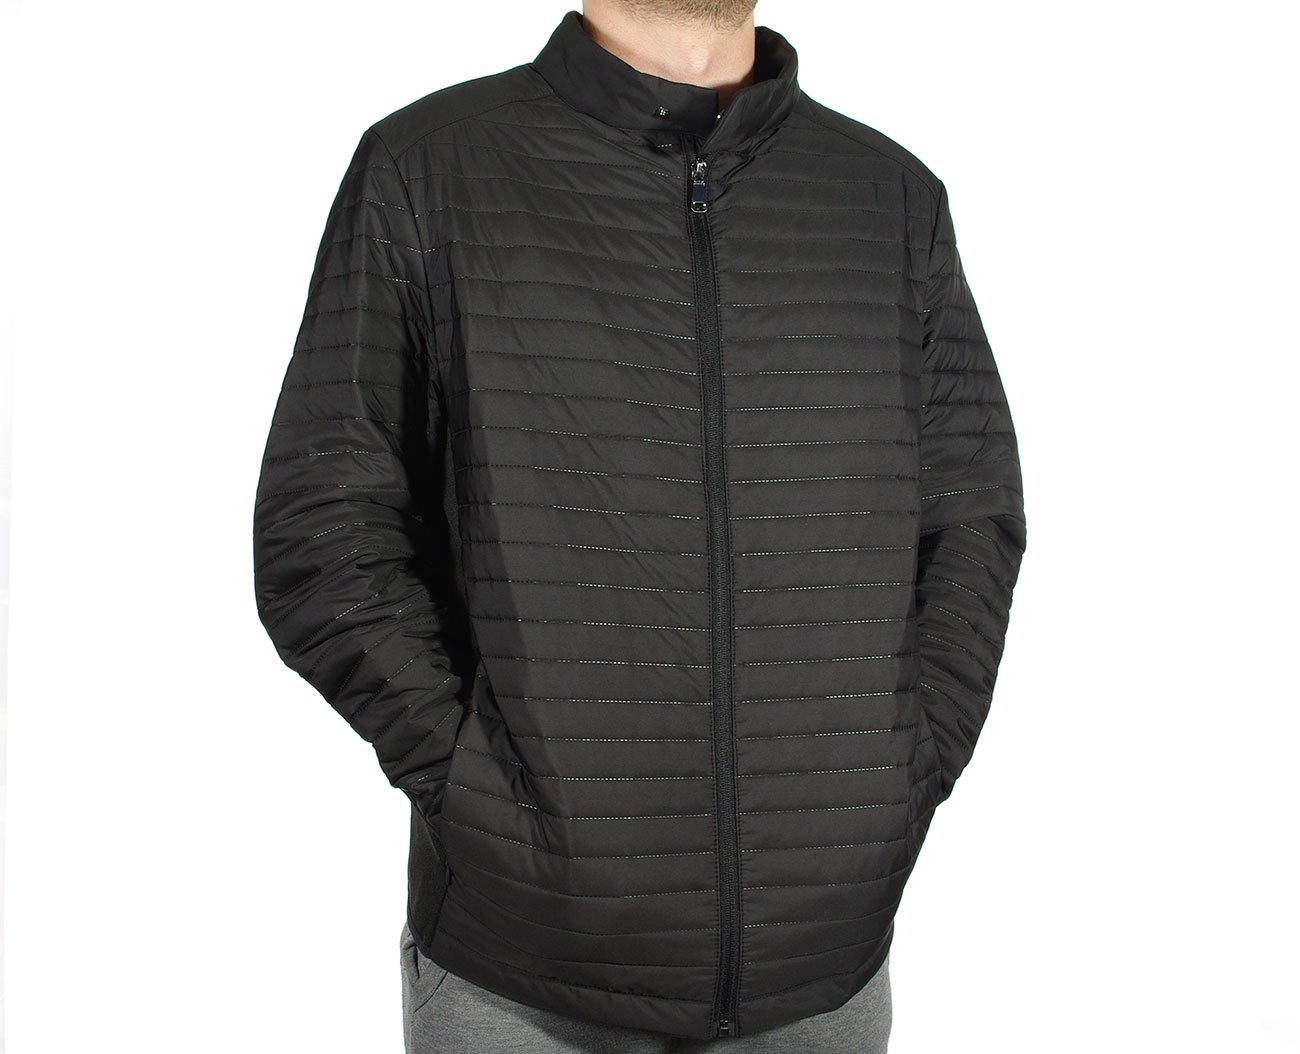 GEOX M8223M kurtka man jacket black